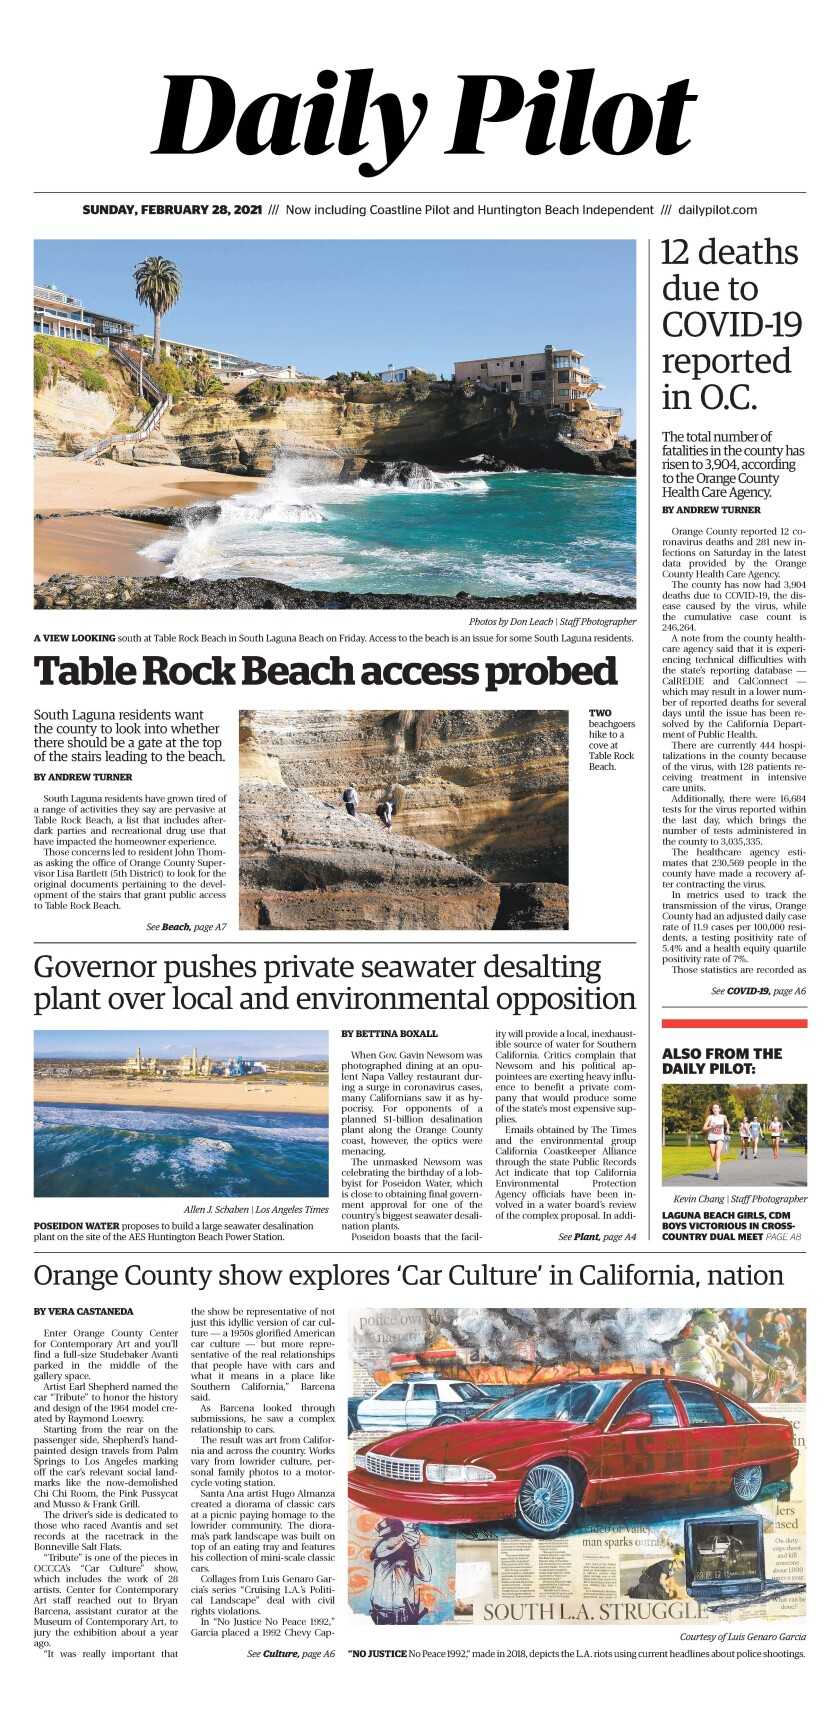 Front page of Daily Pilot e-newspaper for Sunday, Feb. 28, 2021.